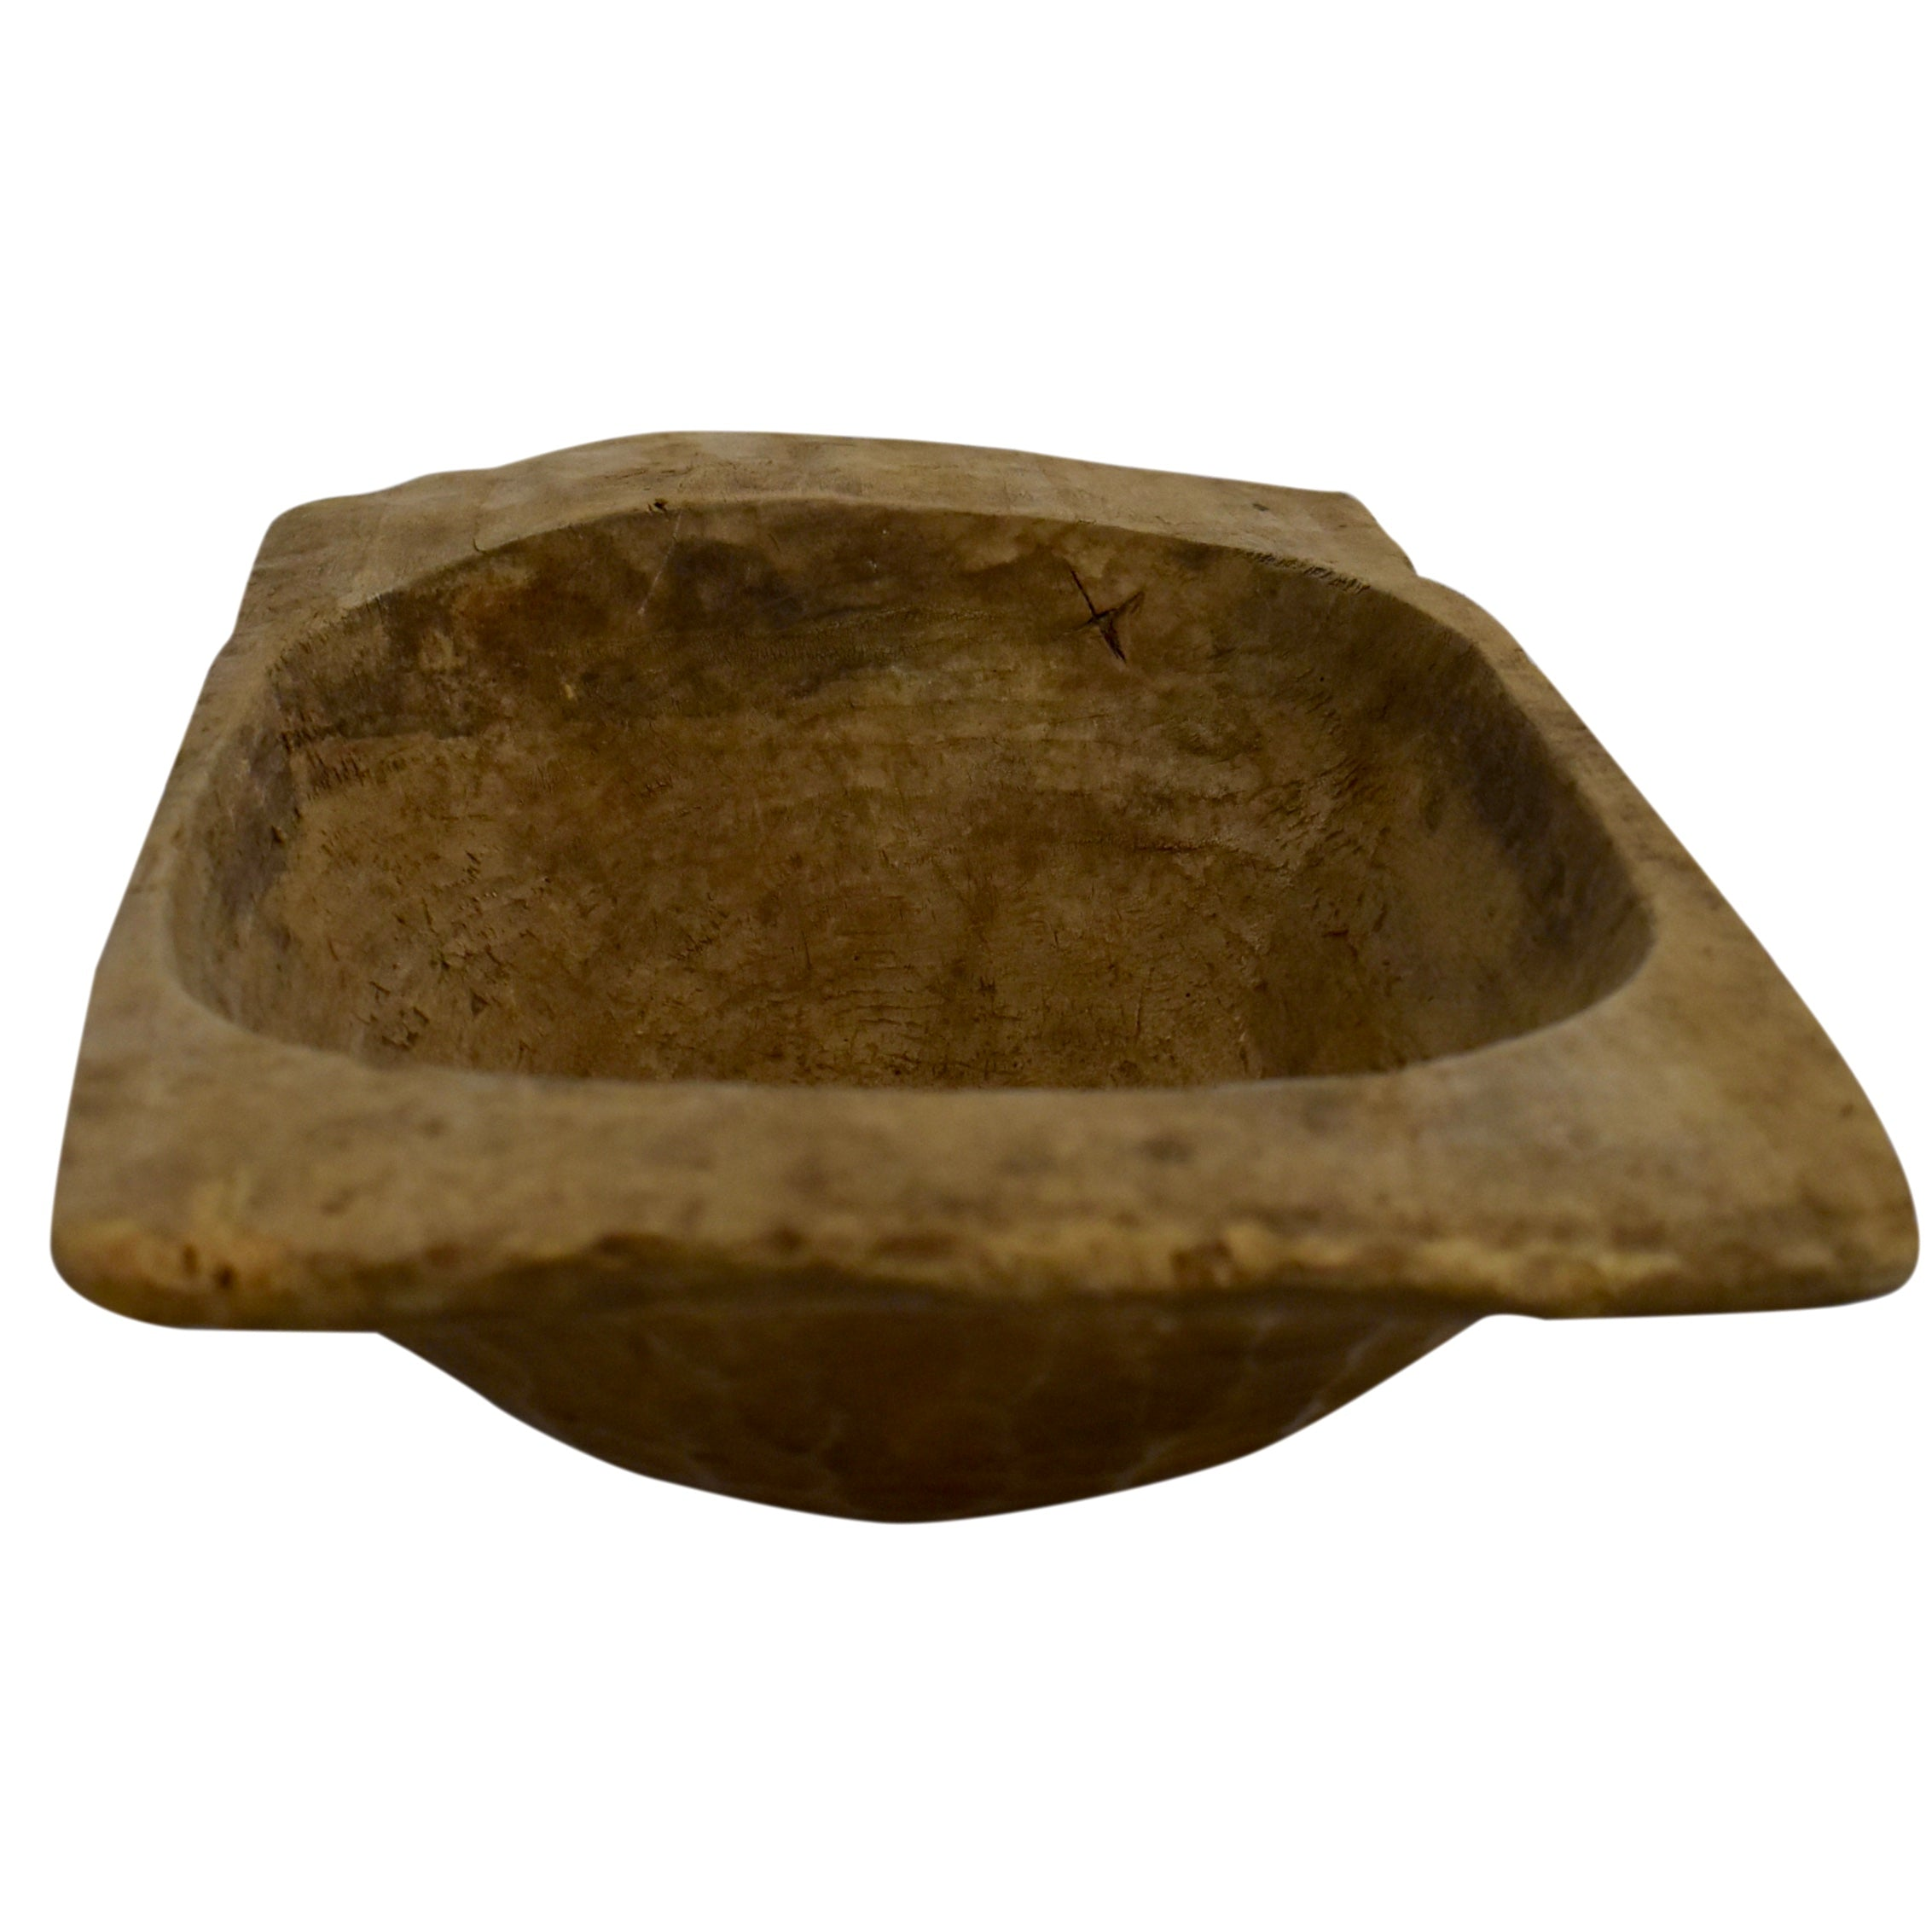 Hand-Hewn Dough Bowl